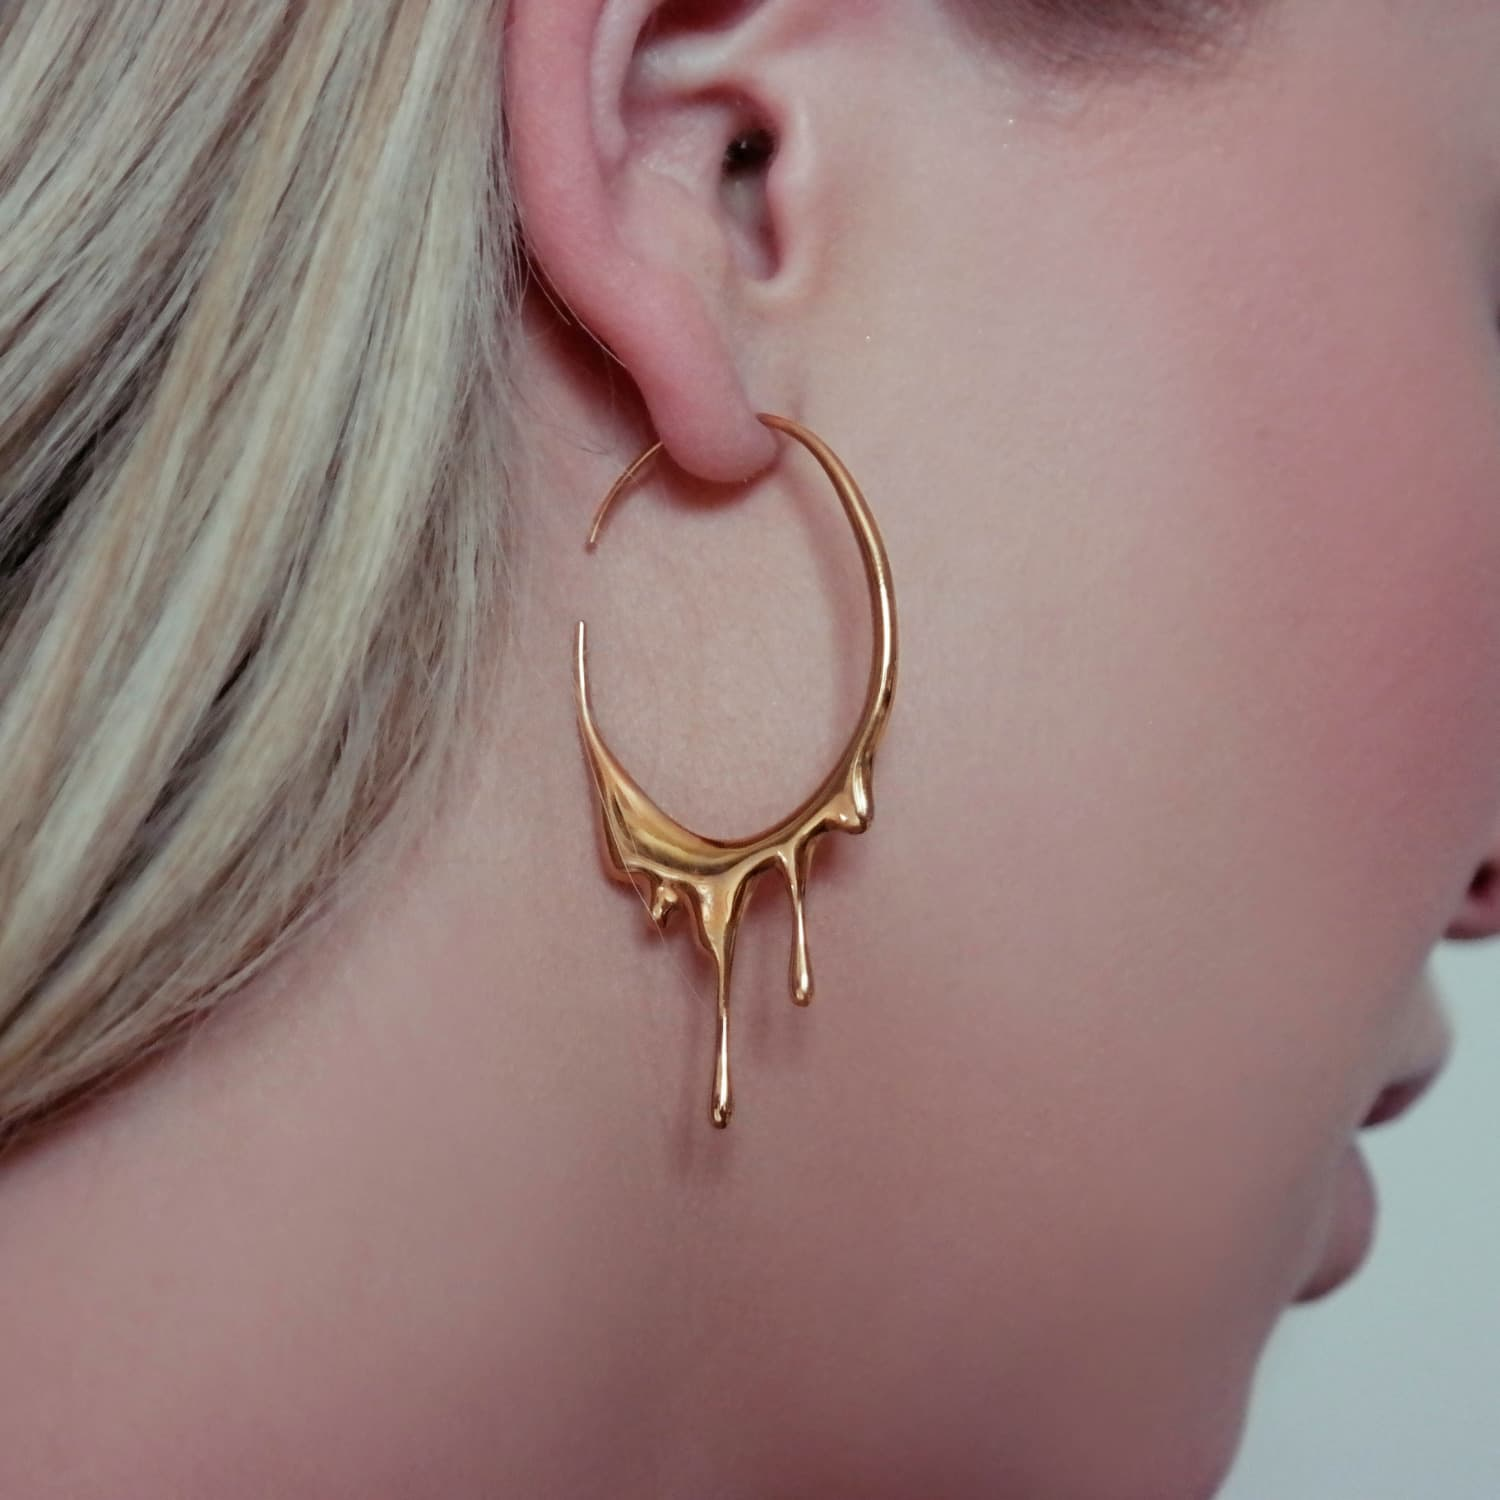 Dripping Oval Small Gold Hoops Marie June Jewelry Wolf